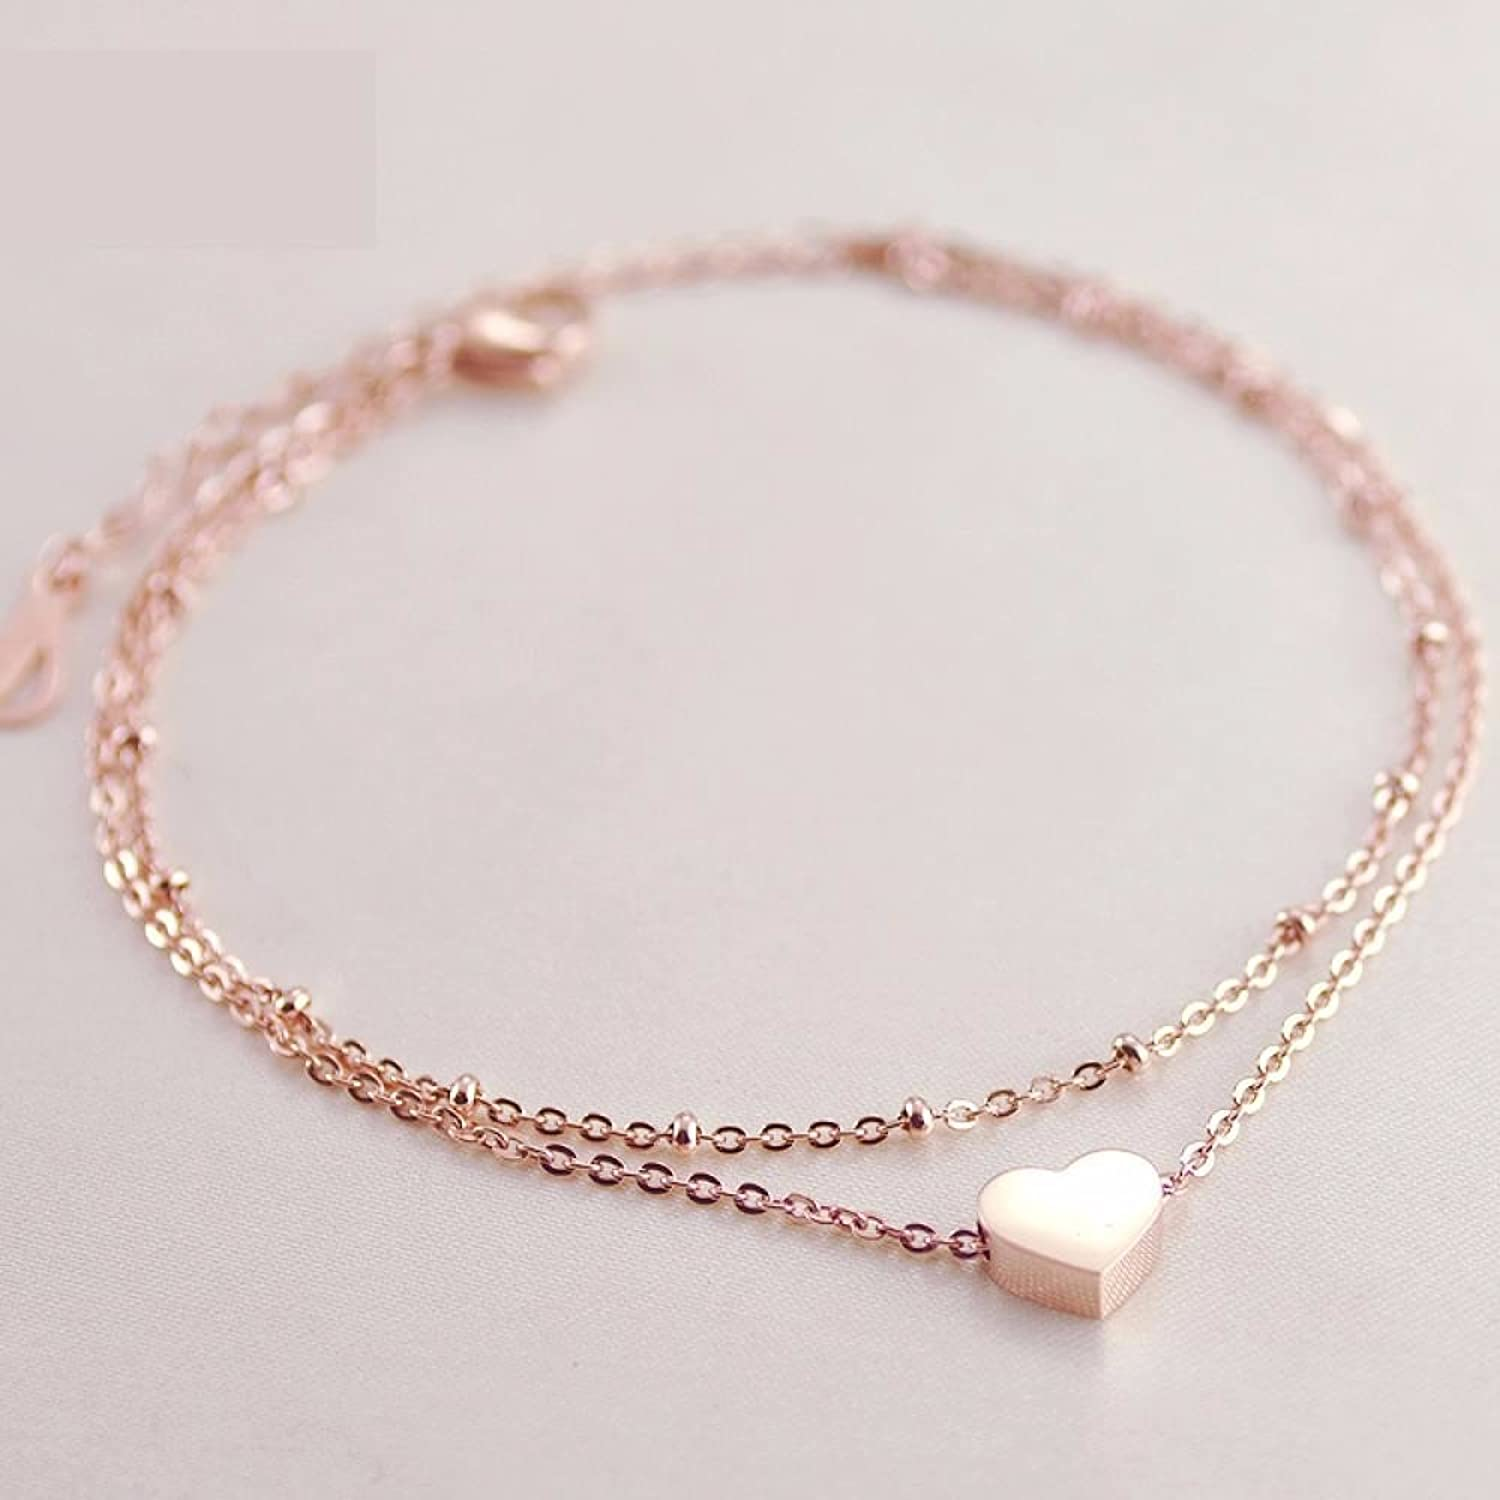 india girl anklet silver pretentious for anklets elegant baby jewelry jewellery fine ksvhs